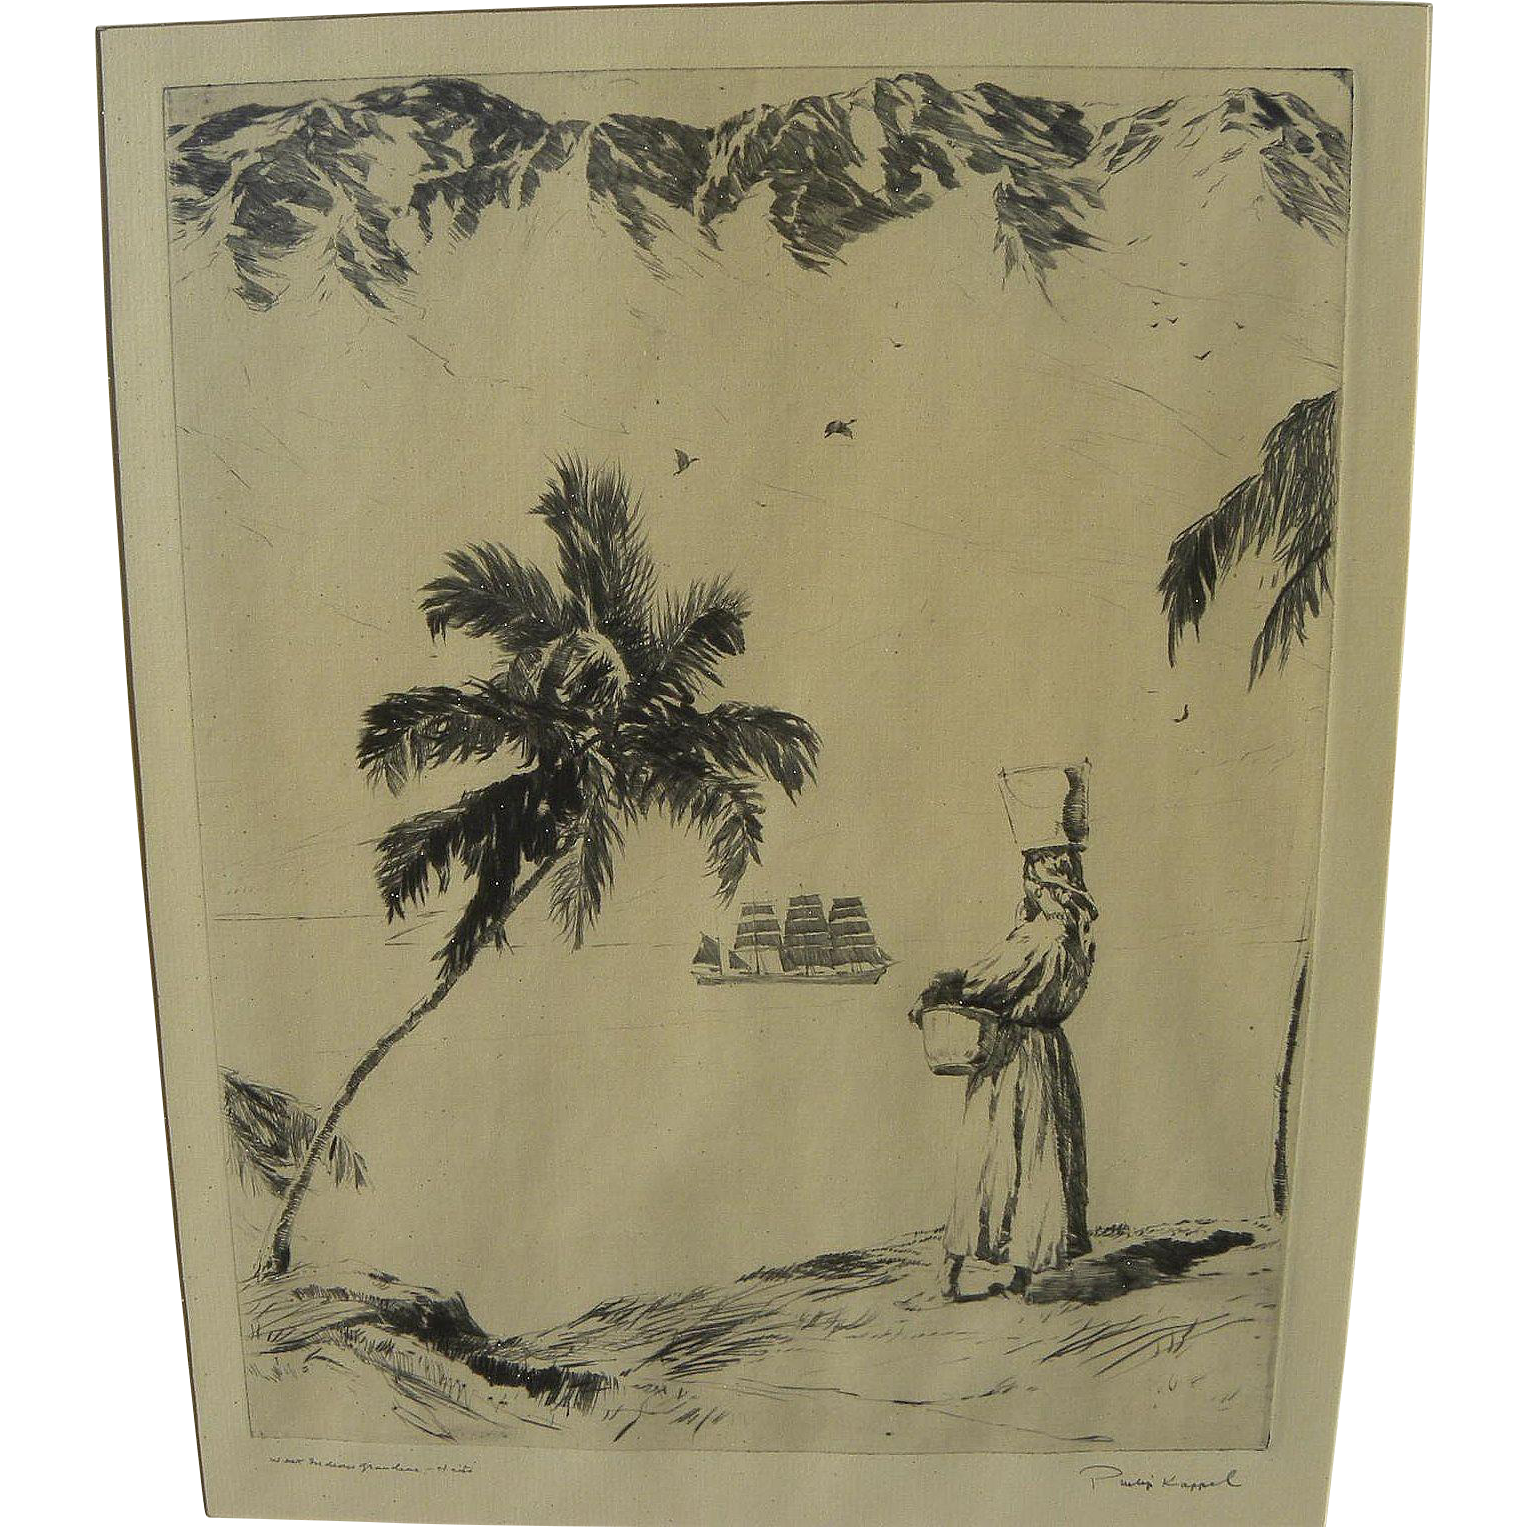 PHILIP KAPPEL (1901-1981) pencil signed etching print of Caribbean scene by noted Connecticut artist